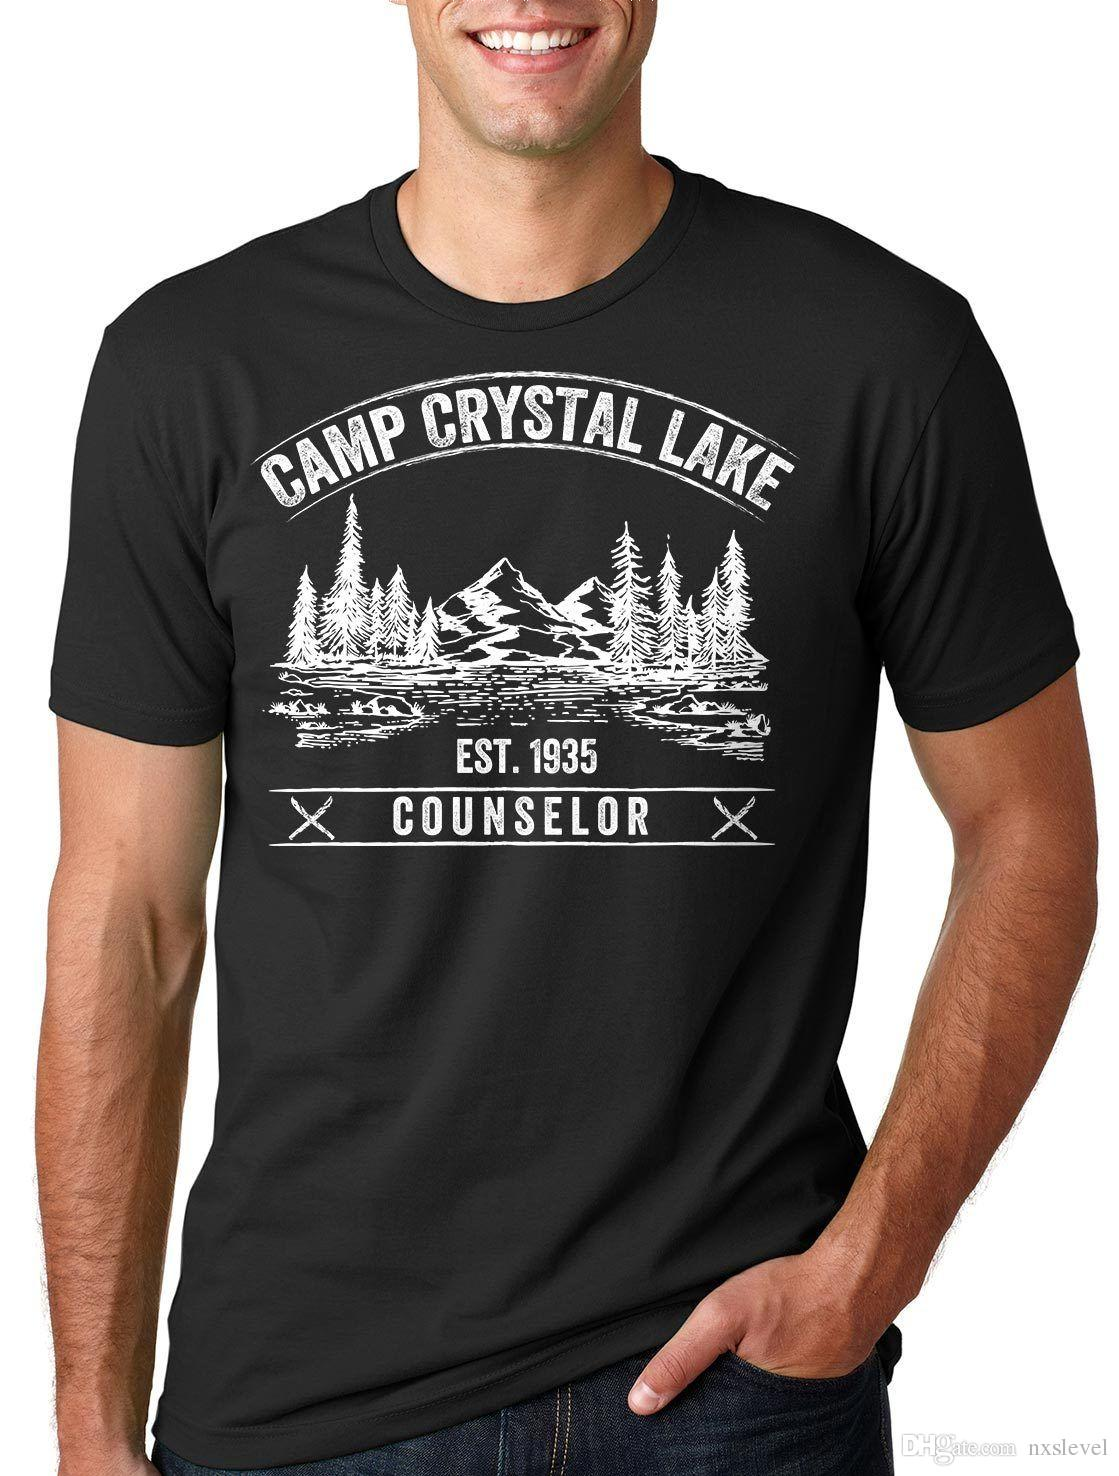 b77b3e3d480d Camp Crystal Lake T Shirt Counselor Tee Shirt Camp Camping T Shirt Summer  Tee Tee Shirts Mens T Shirts From Nxslevel